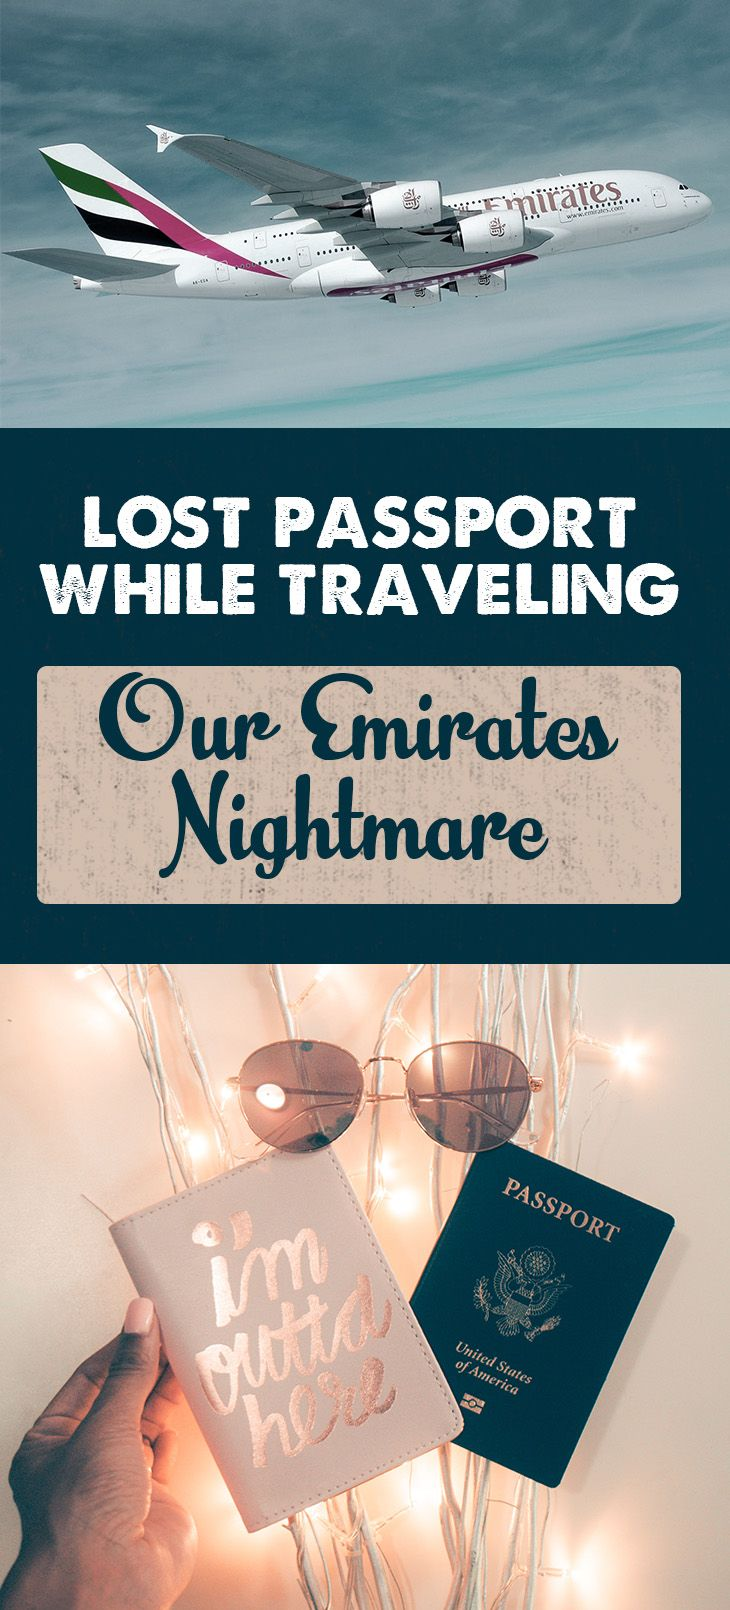 Have you ever lost your passport while traveling? Here's our Emirates nightmare.